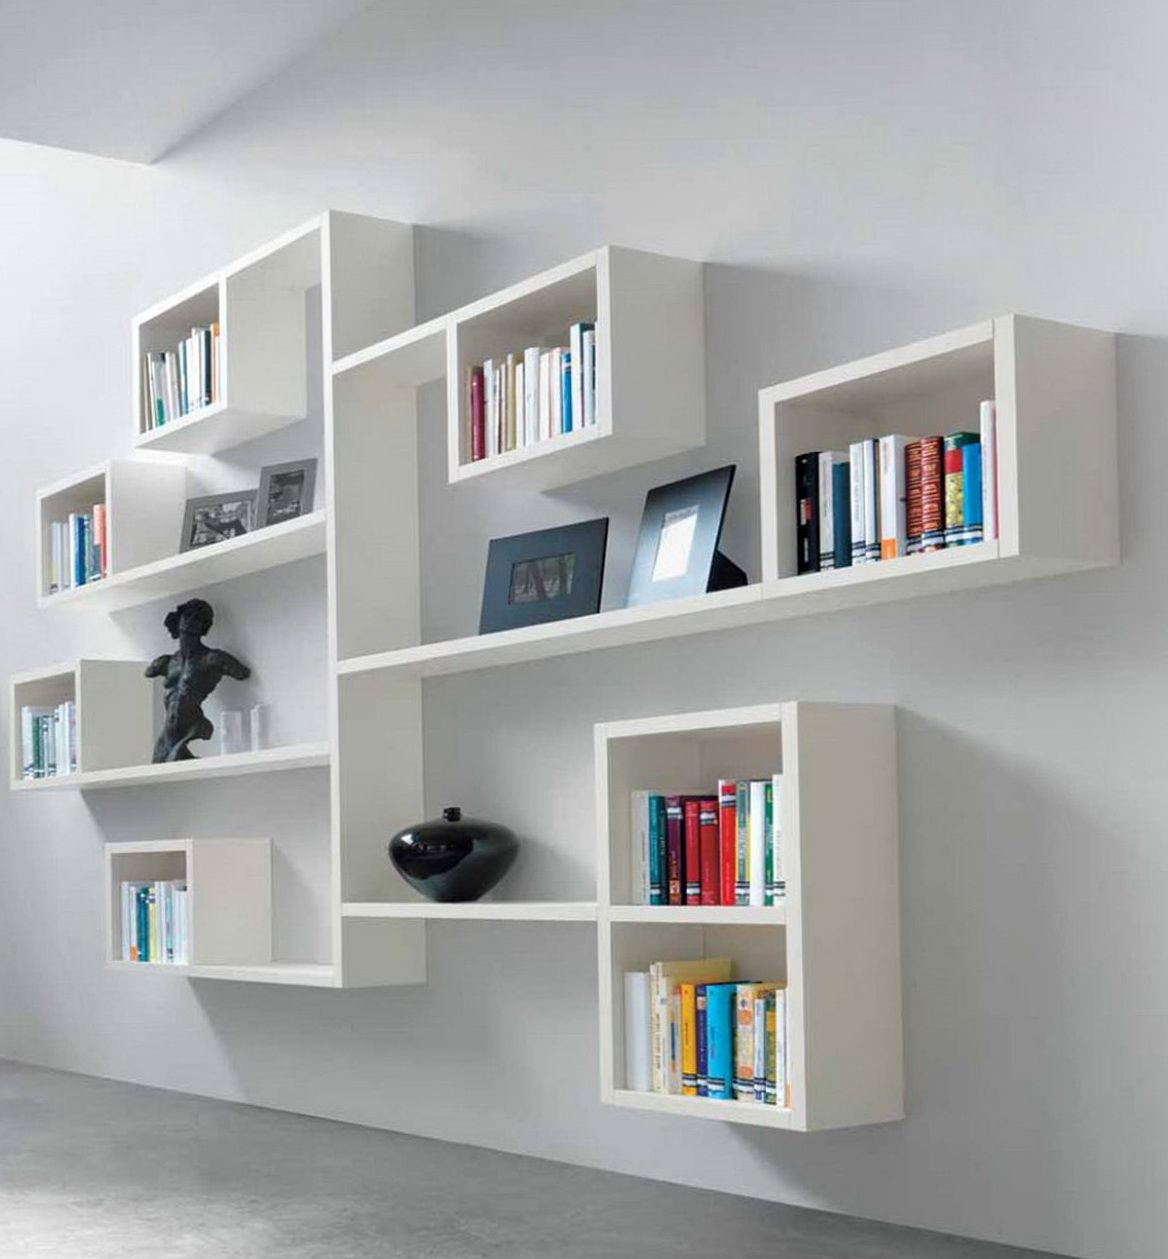 Modular Wall Shelving Children's Book Shelves Wall Mounted  Mur  Pinterest  Shelf